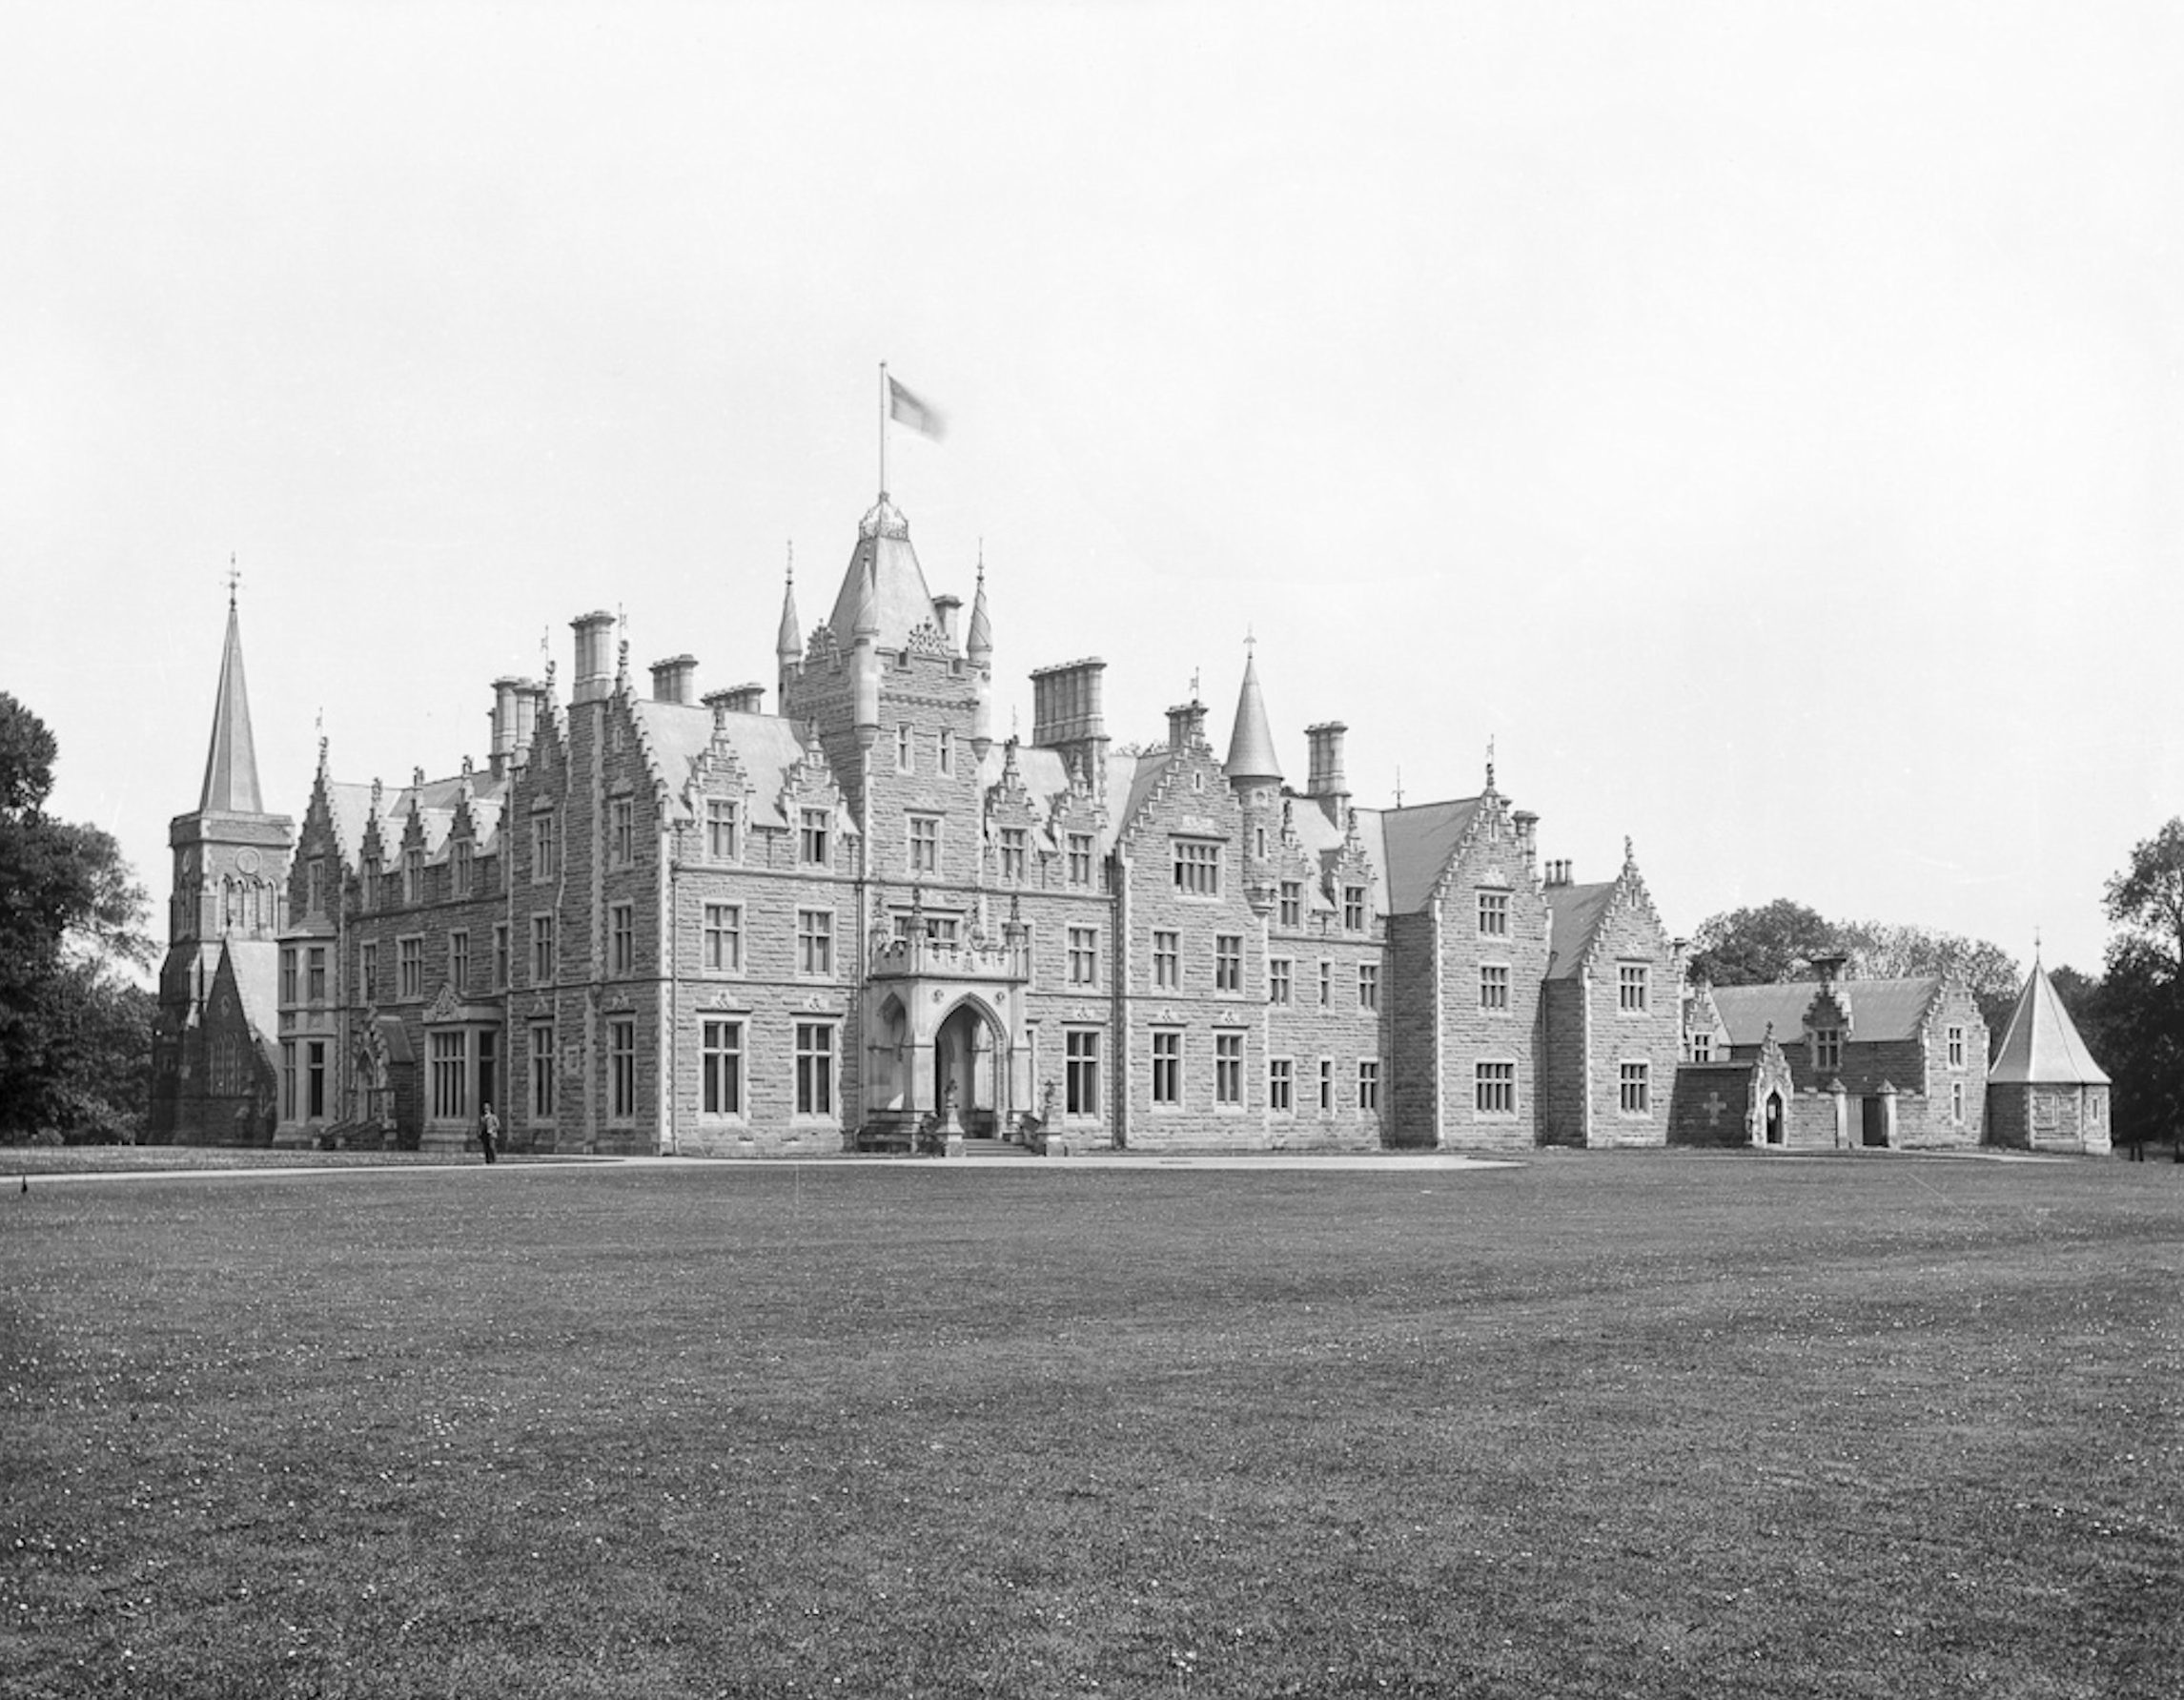 Duncrub Park, by Dunning, is one of the lost architectural treasures.